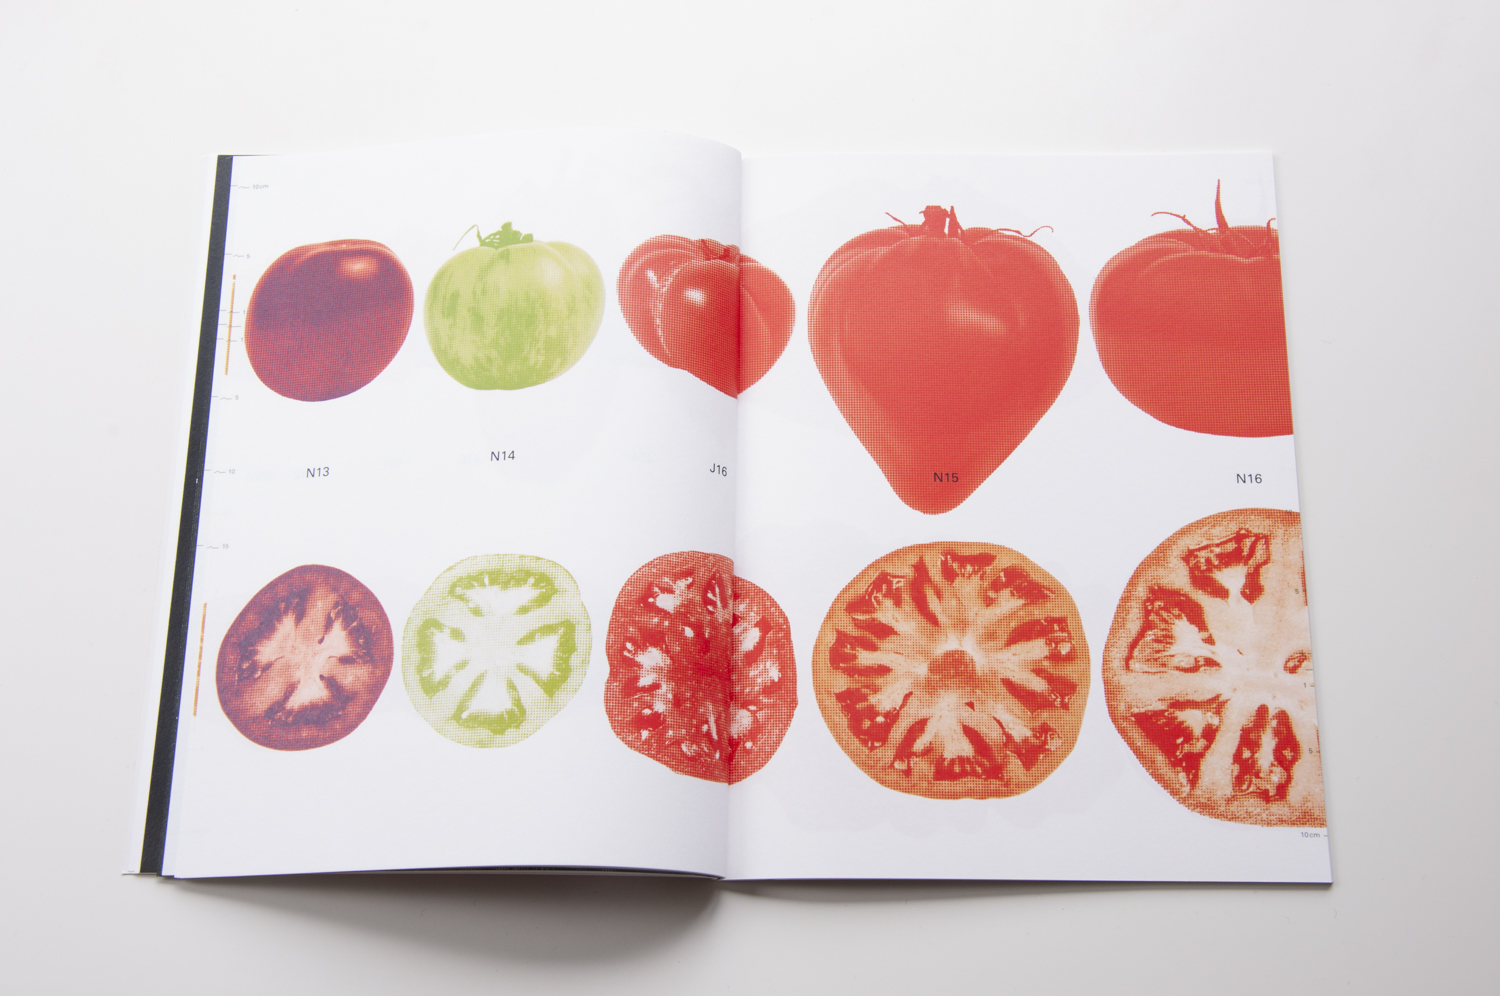 2018_Our-Food-1-Tomato_10.jpg